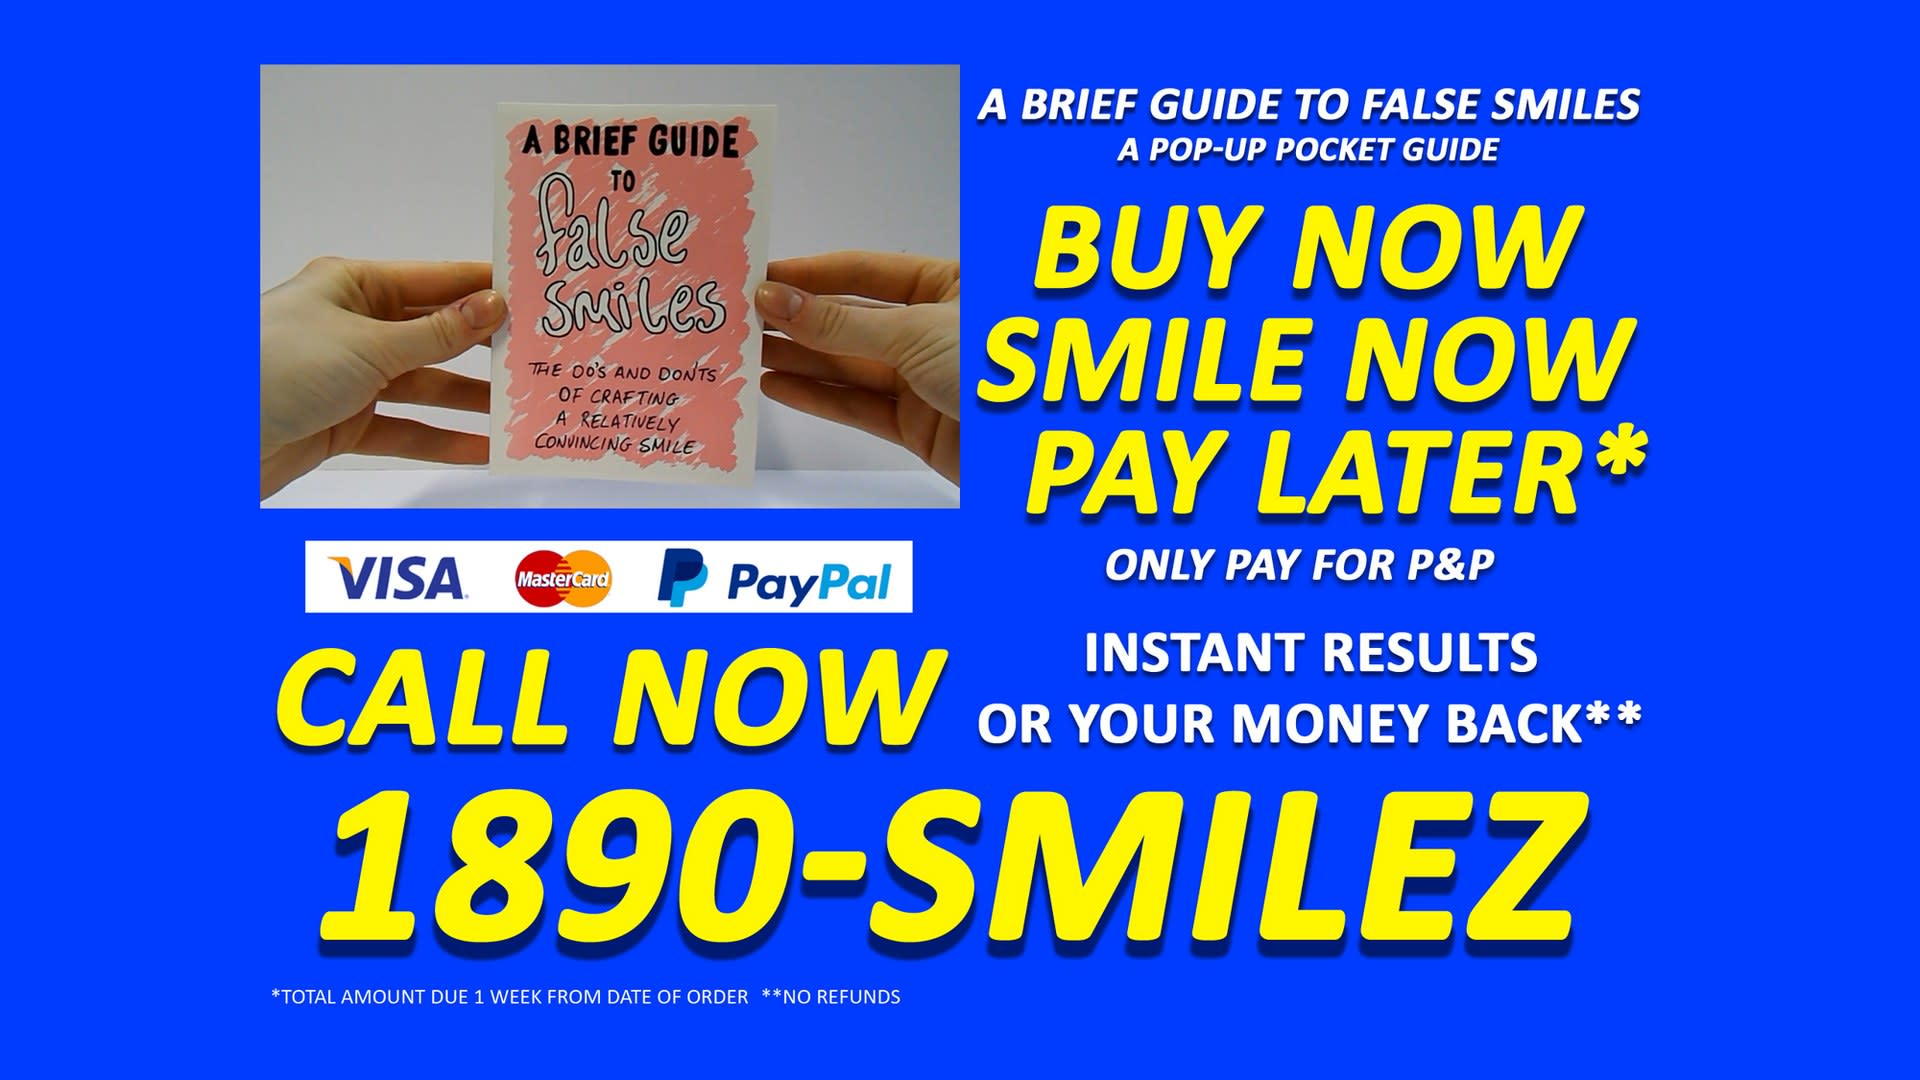 Buy Now, Smile Now, Pay Later (still)